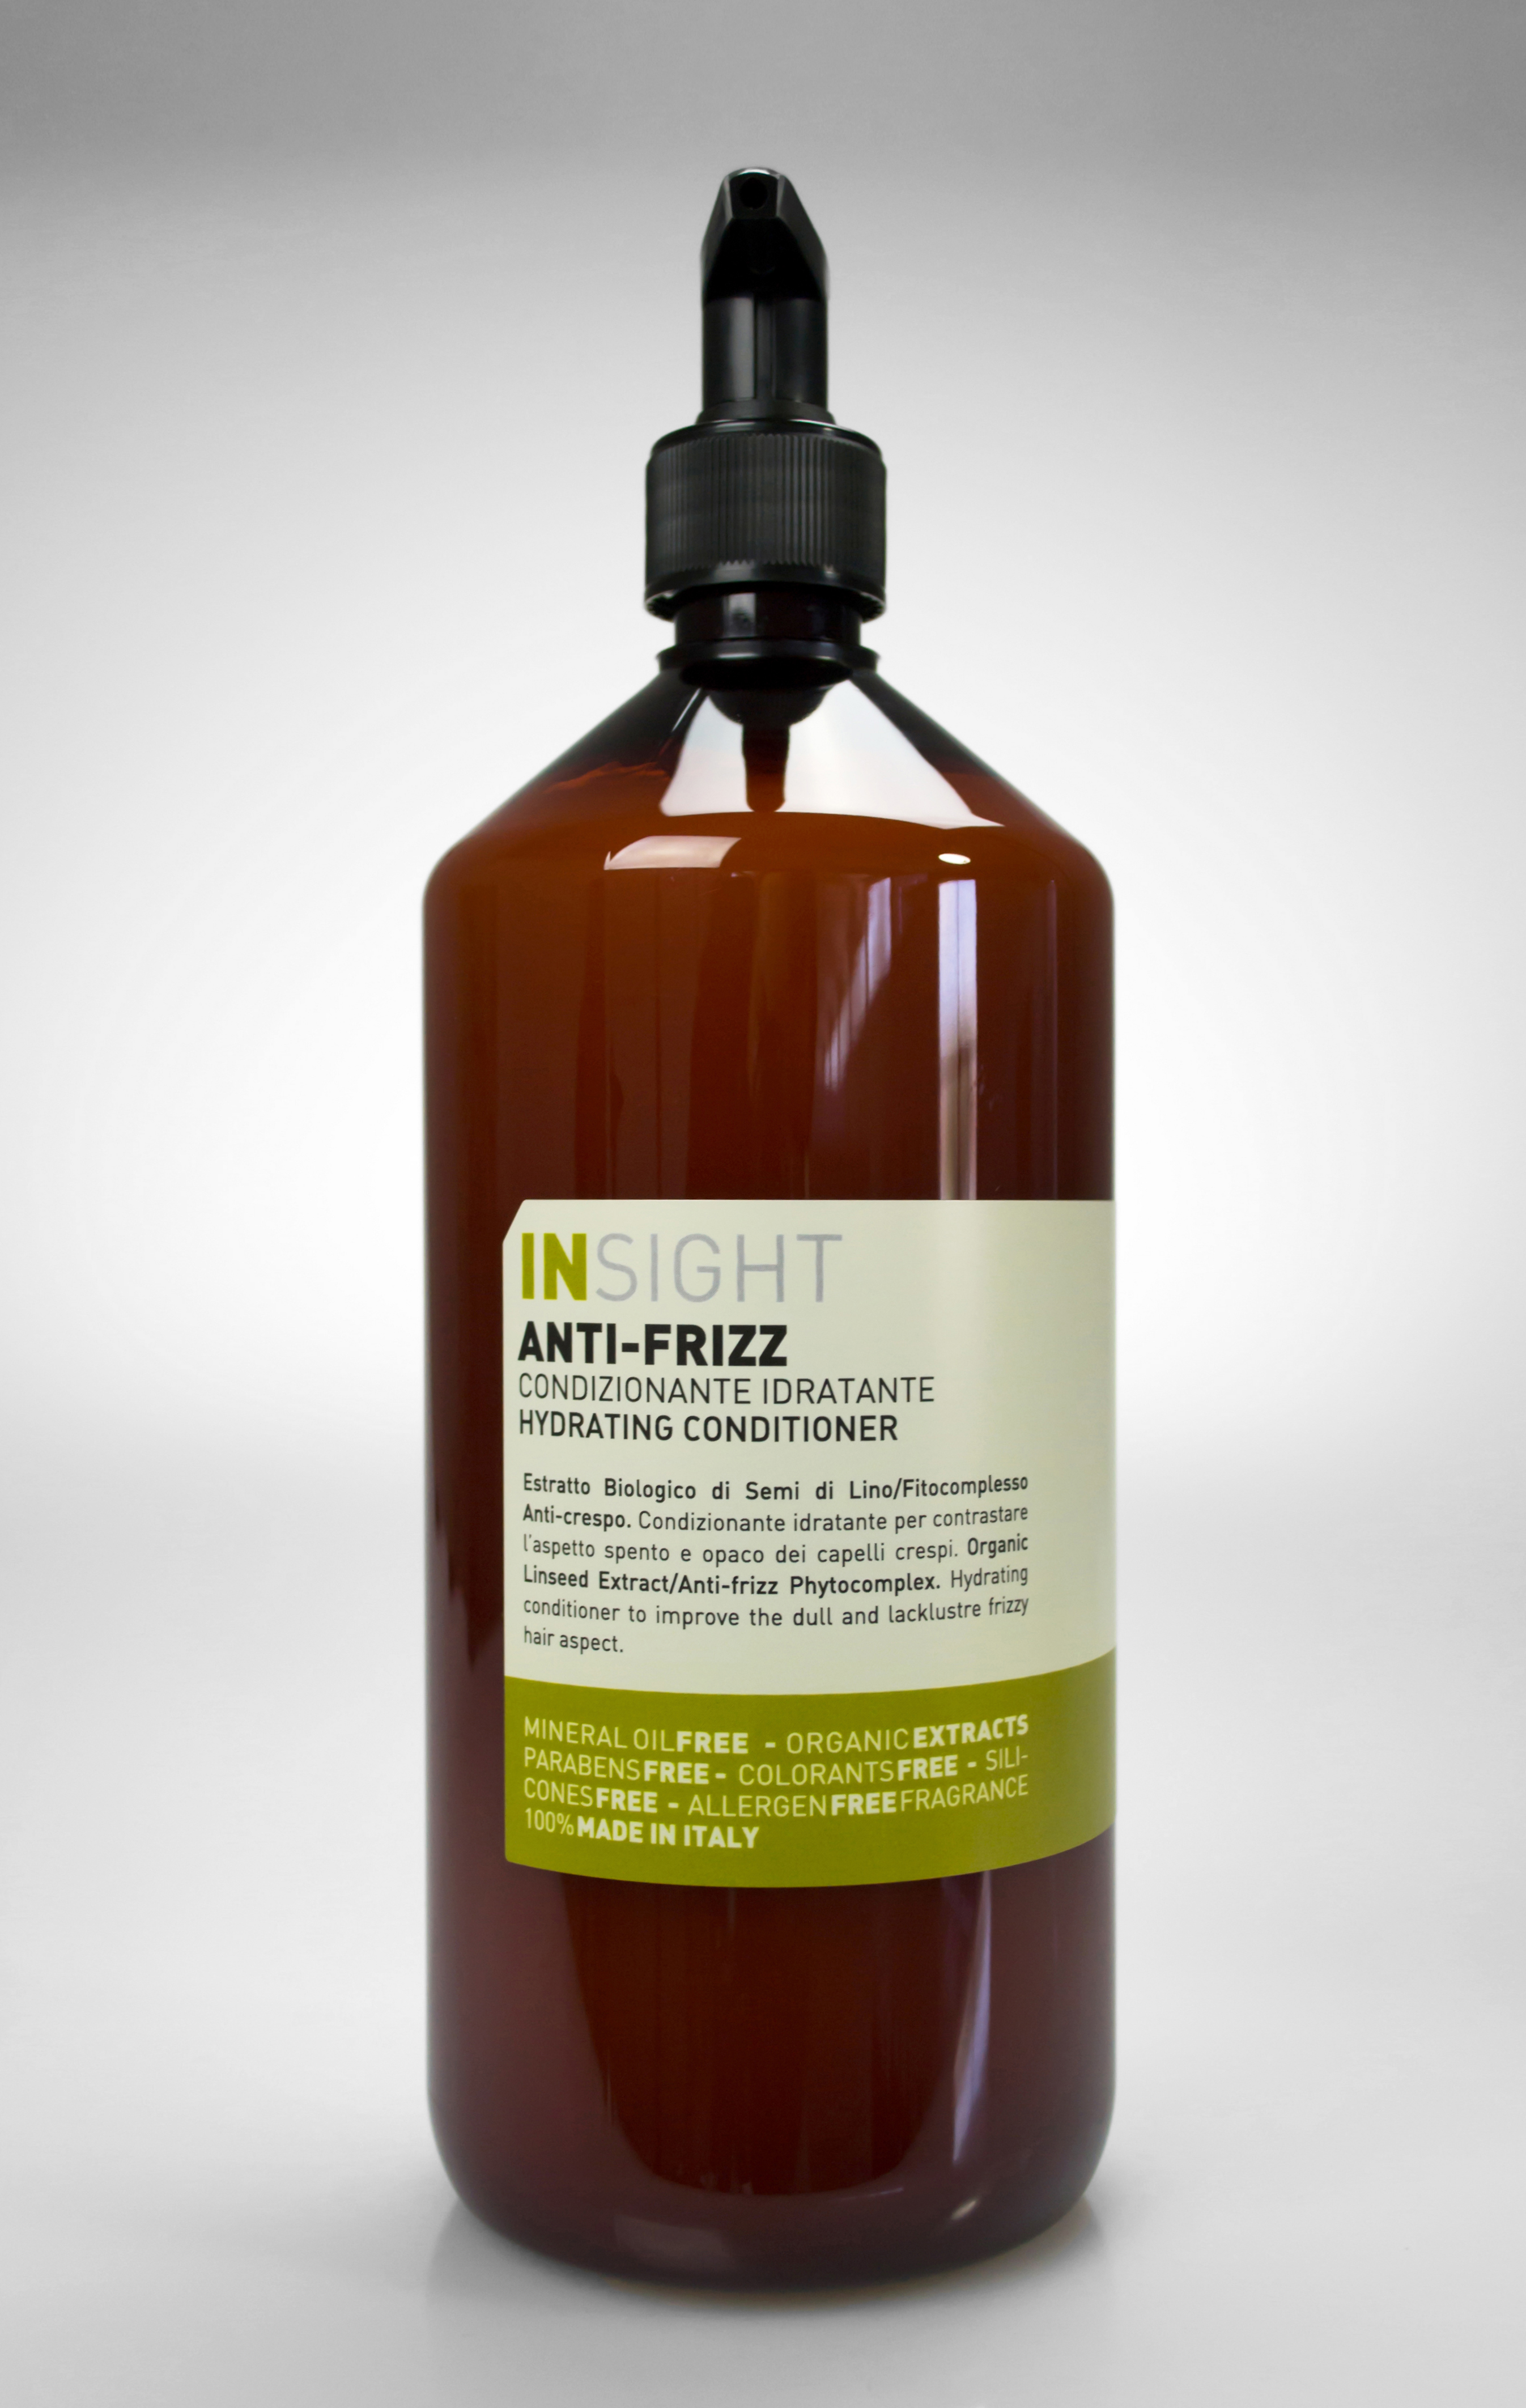 ANTI-FRIZZ HYDRATING CONDITIONER